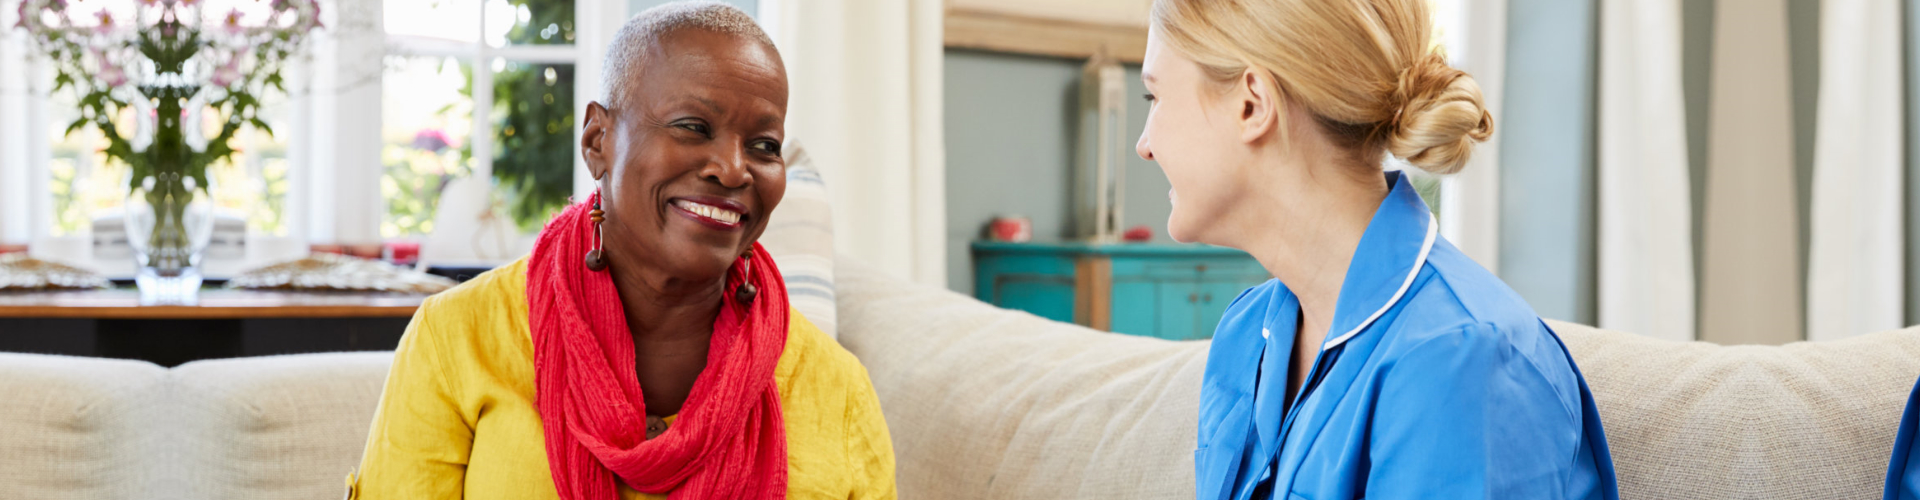 senior woman and a caregiver talking